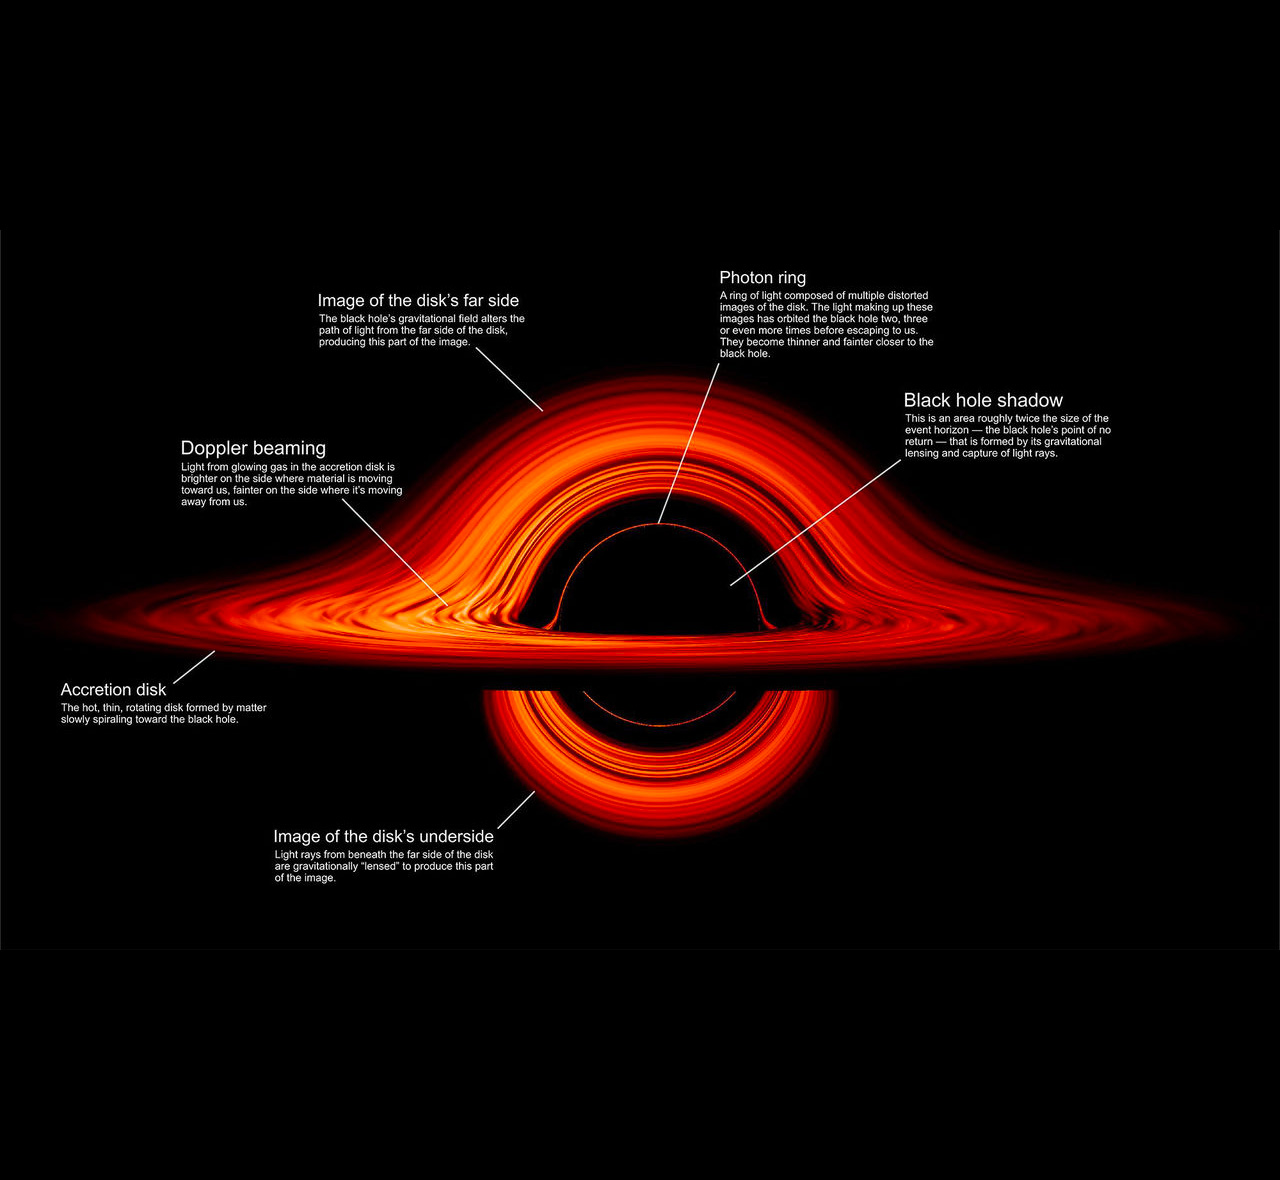 NASA Black Hole Visualization